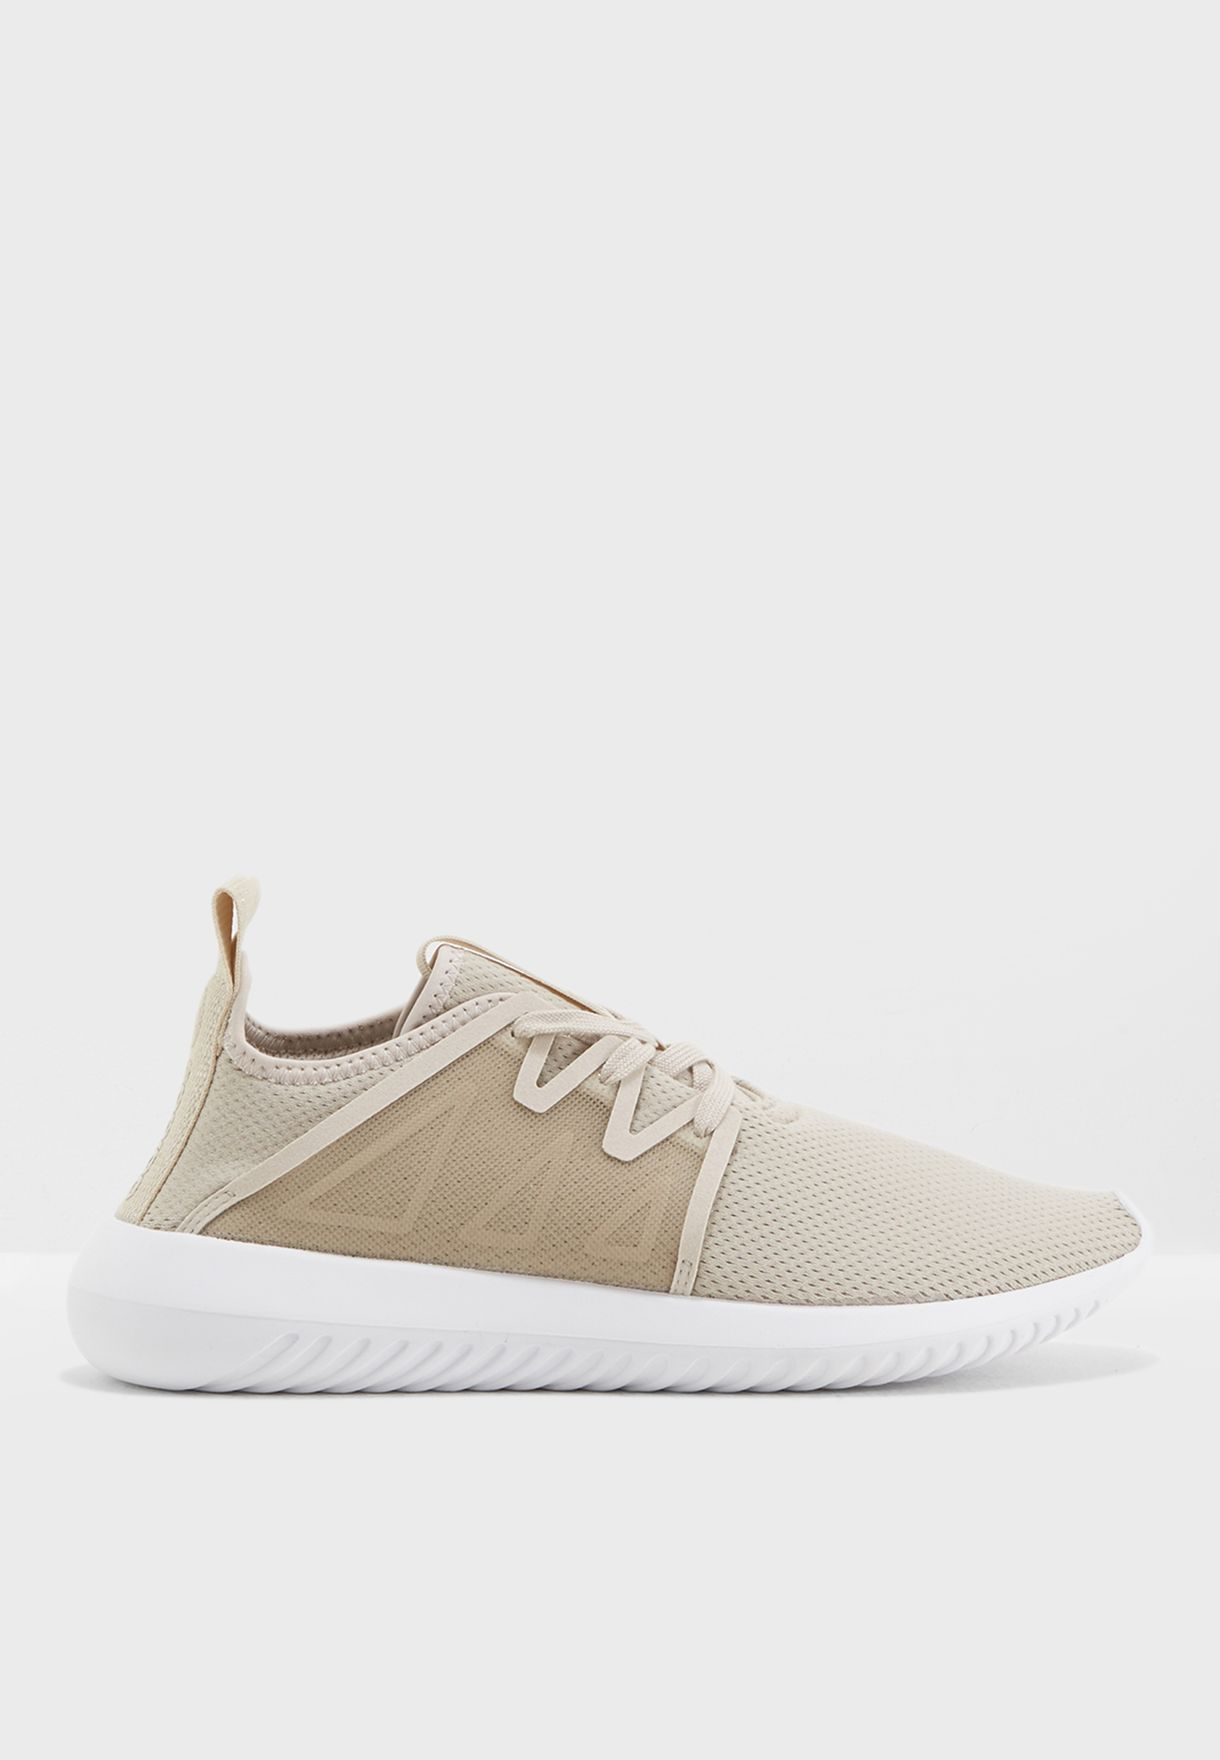 Shop adidas Originals beige Tubular Viral 2 CQ3012 for Women in UAE ... 1e8e4ce30